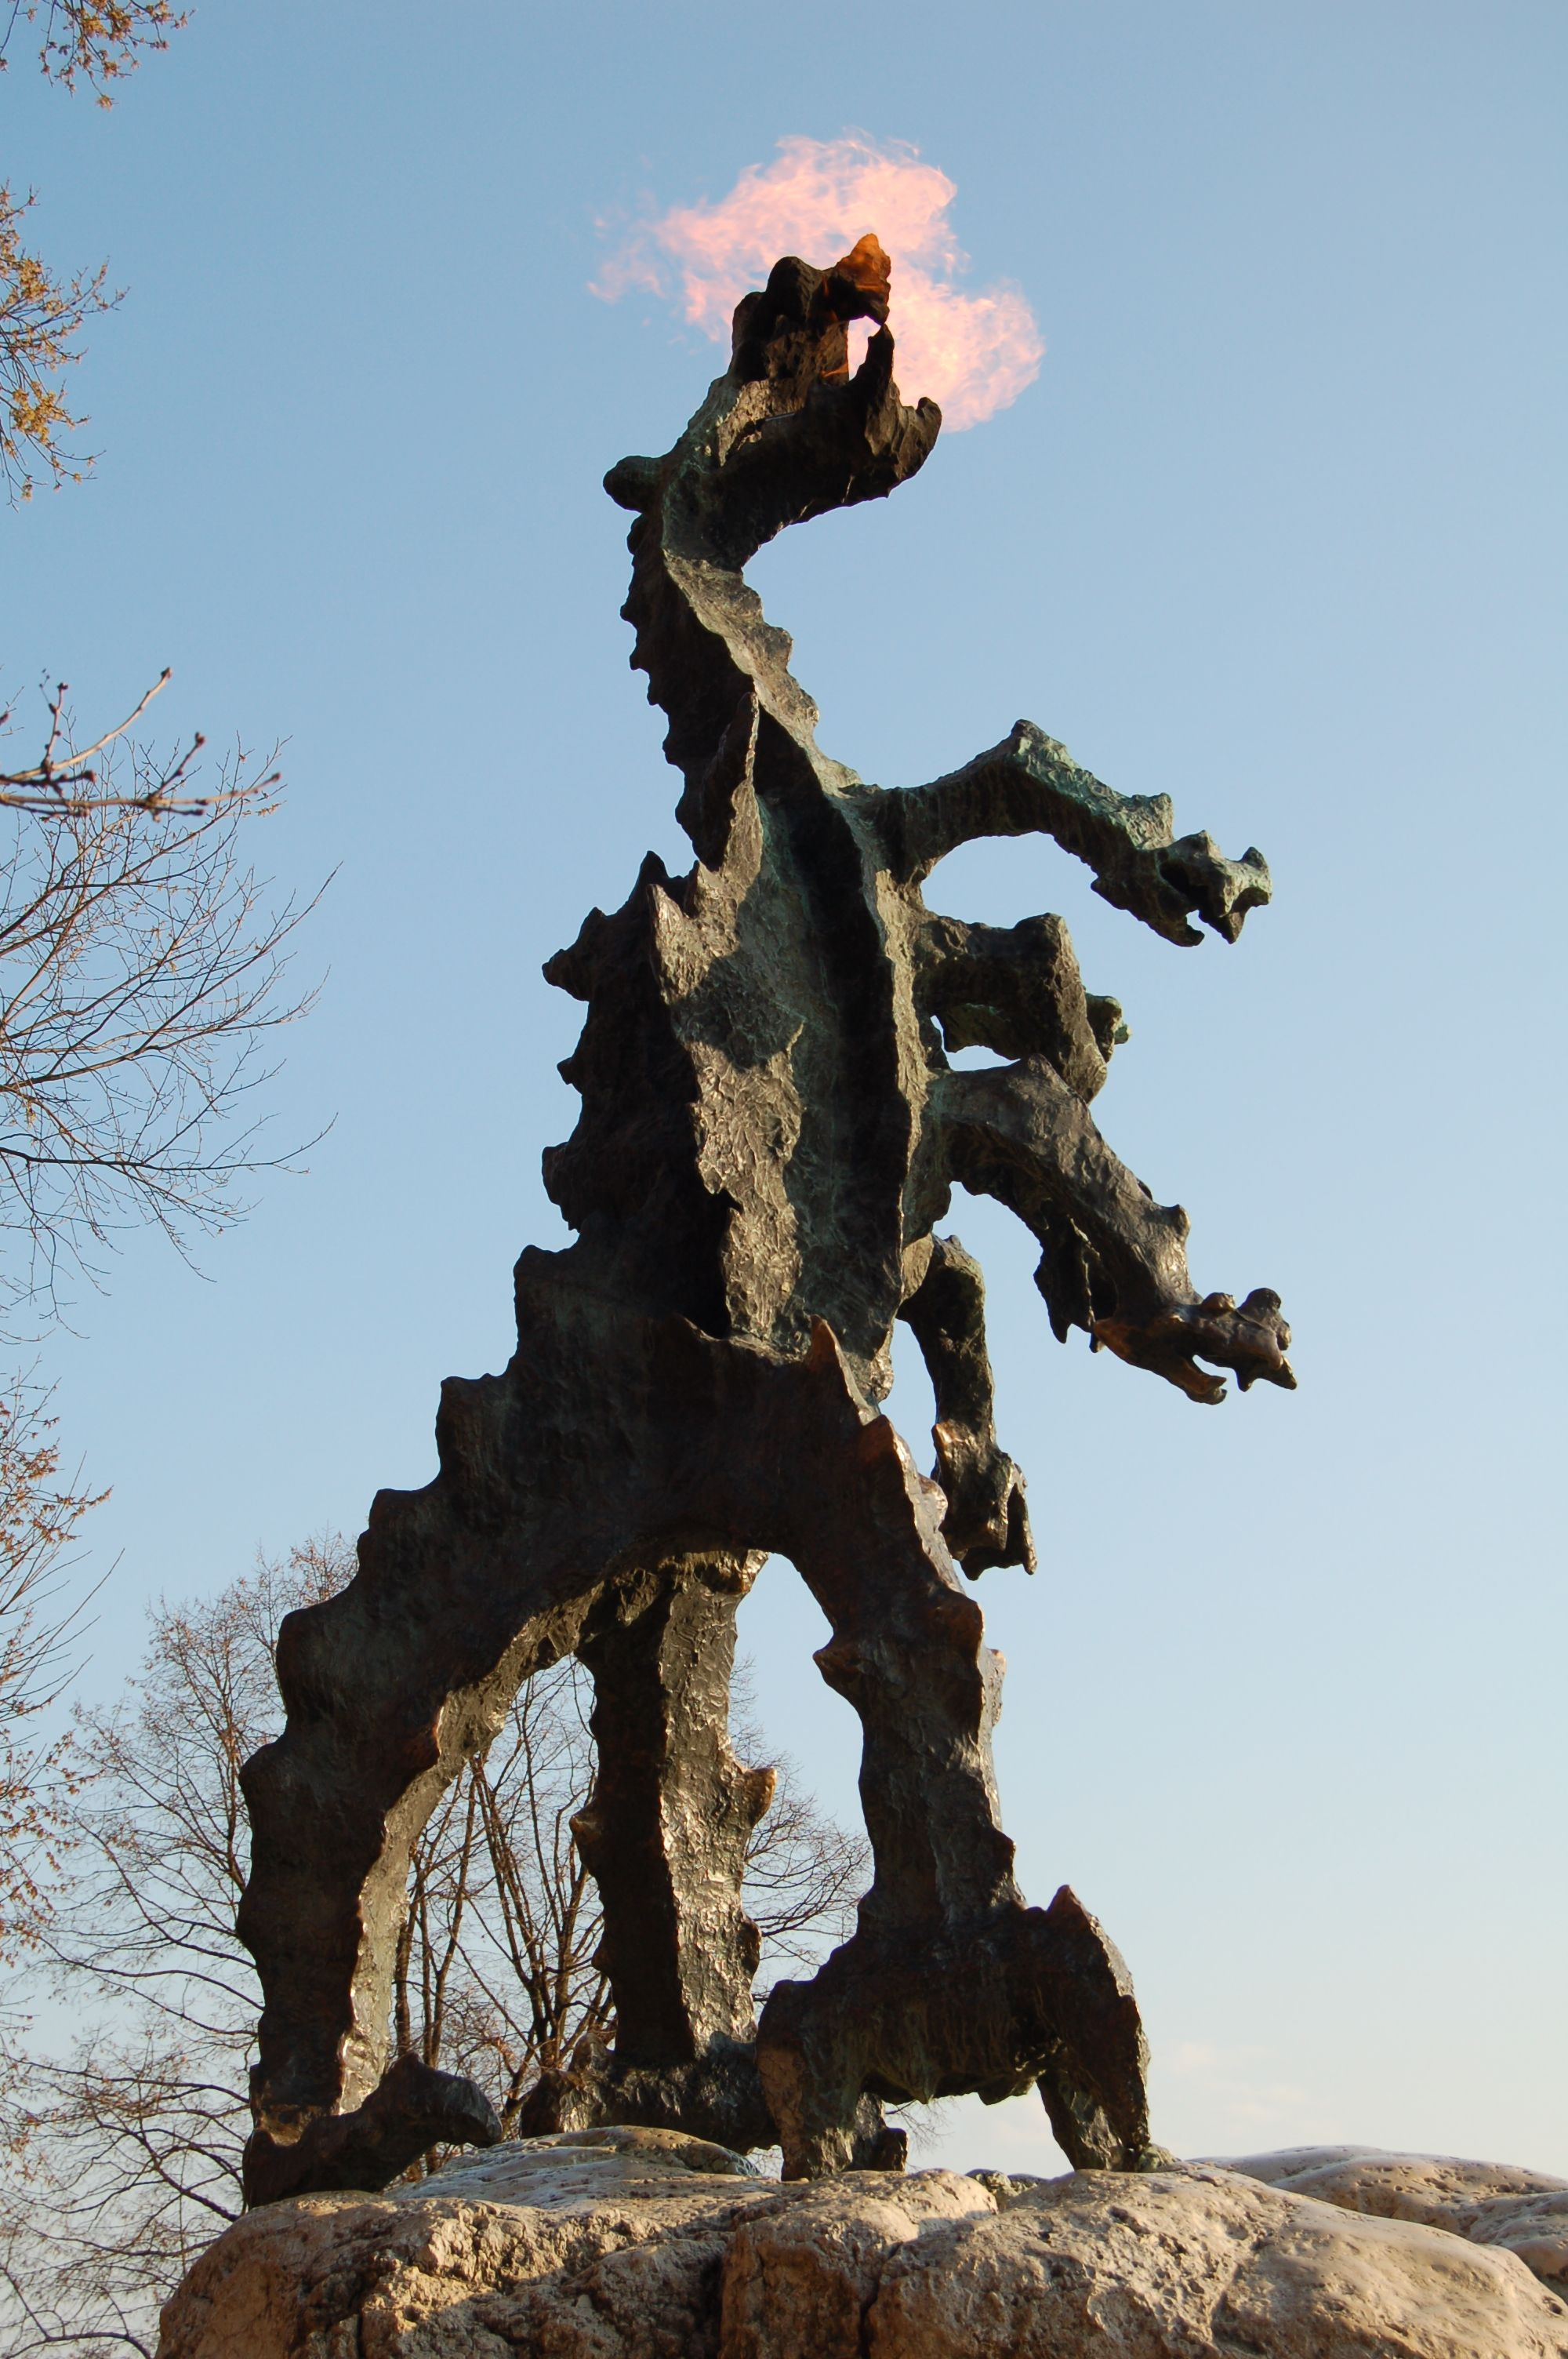 Dragon Of Wawel Hill A Metal Sculpture Designed By Bronislaw Chromy Placed In Front Of The Dragon S Den Dragons Tumblr Bald Eagle Dragon